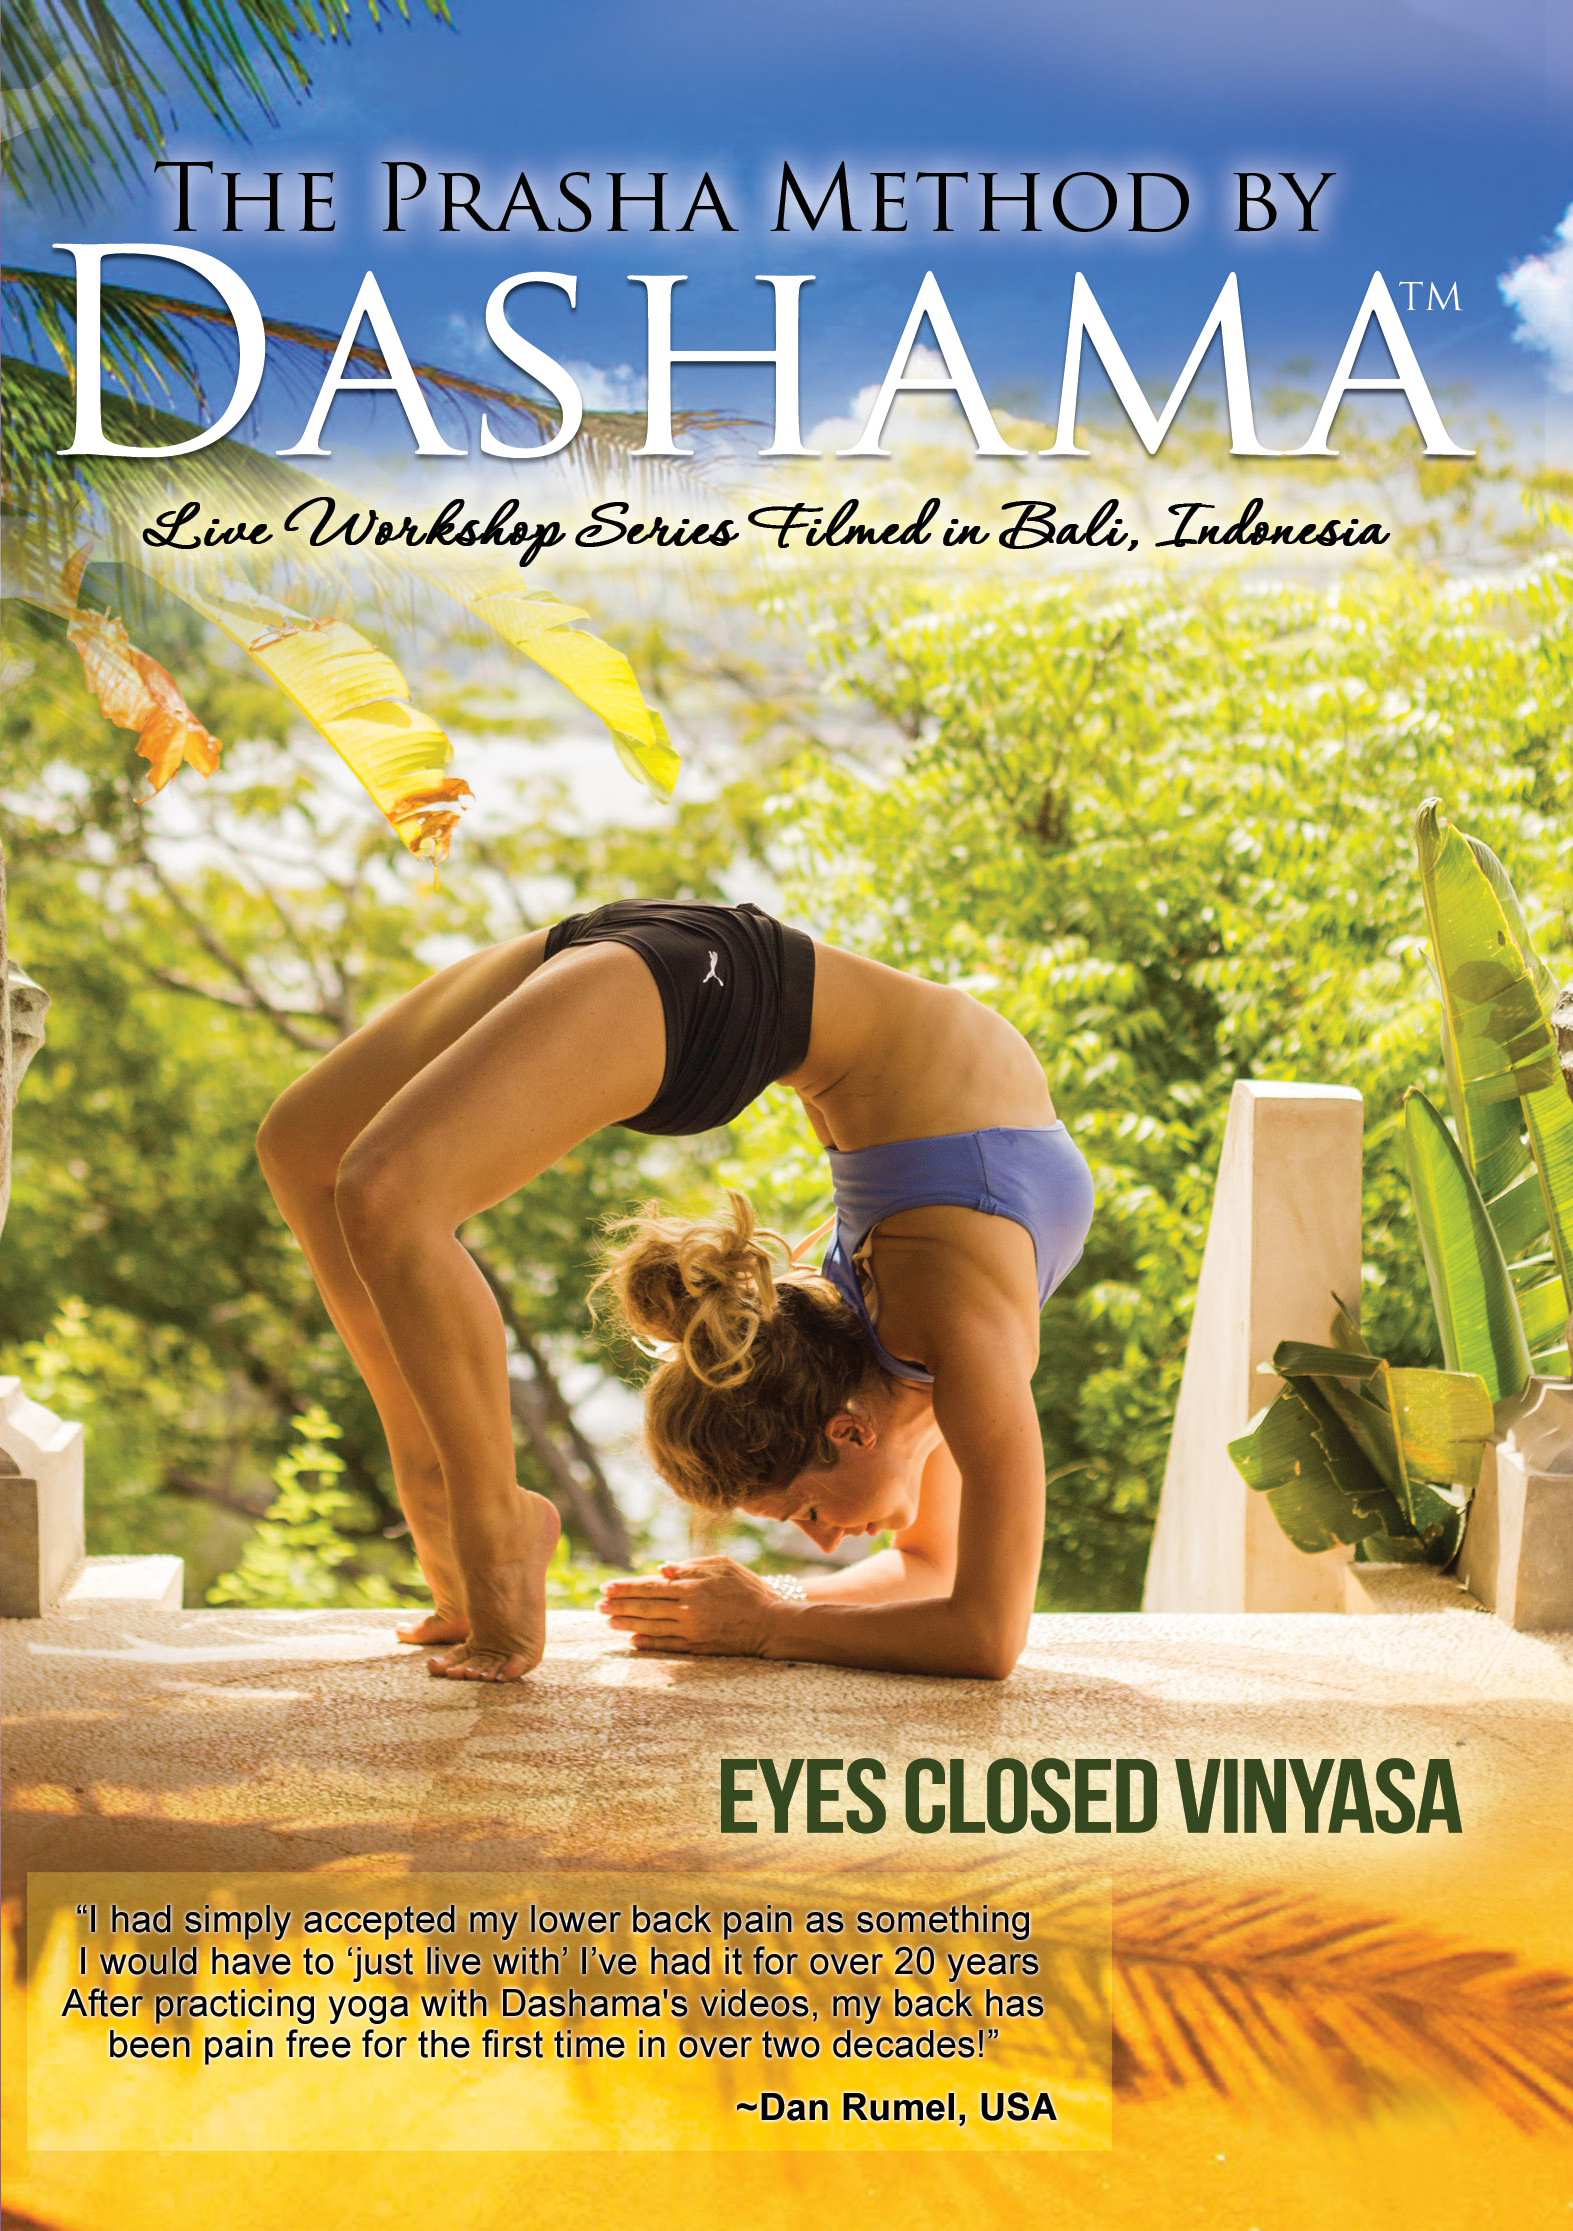 The Prasha Method by Dashama: Eyes Closed Vinyasa